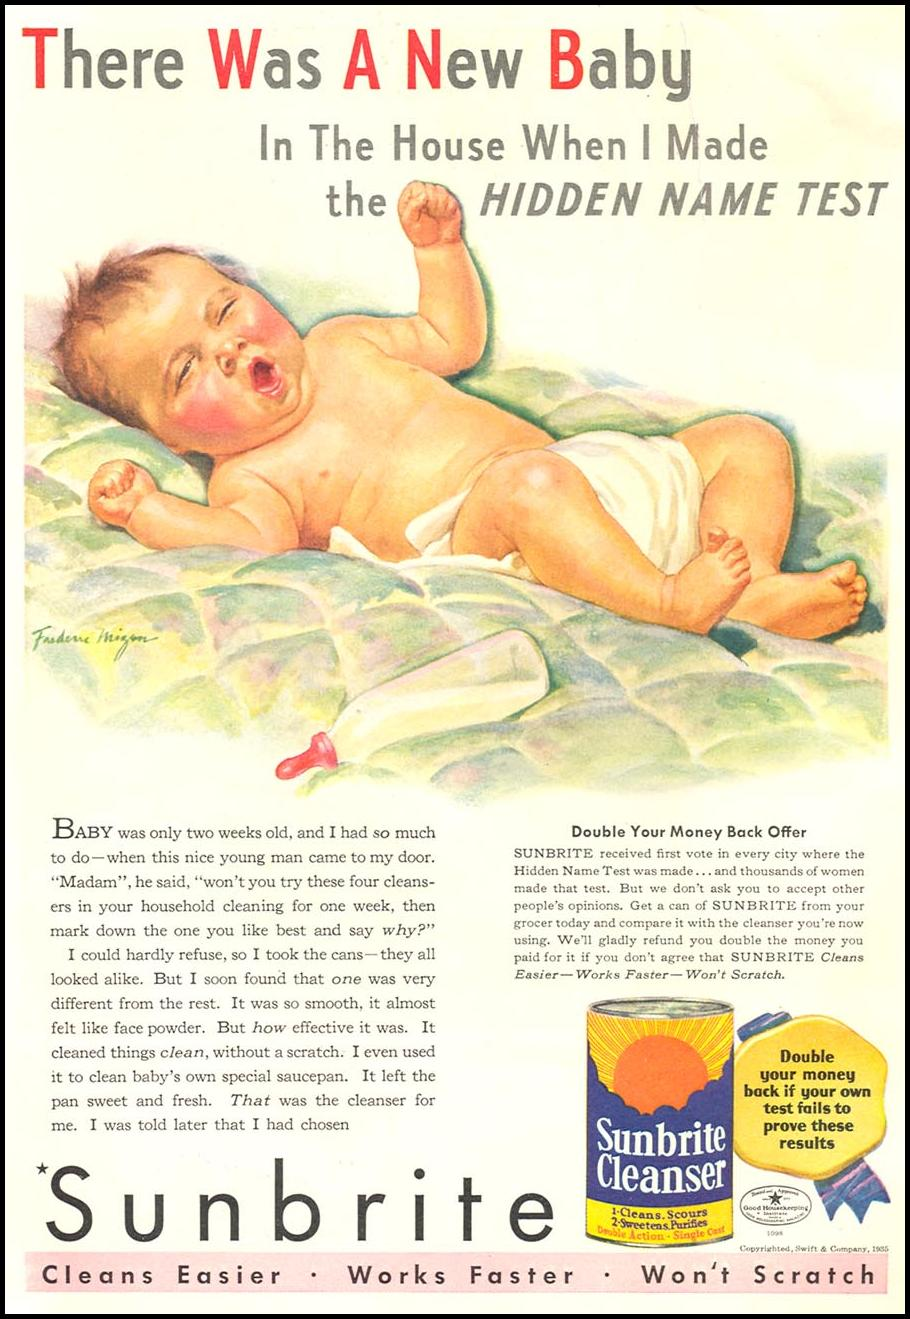 SUNBRITE CLEANSER GOOD HOUSEKEEPING 06/01/1935 p. 116